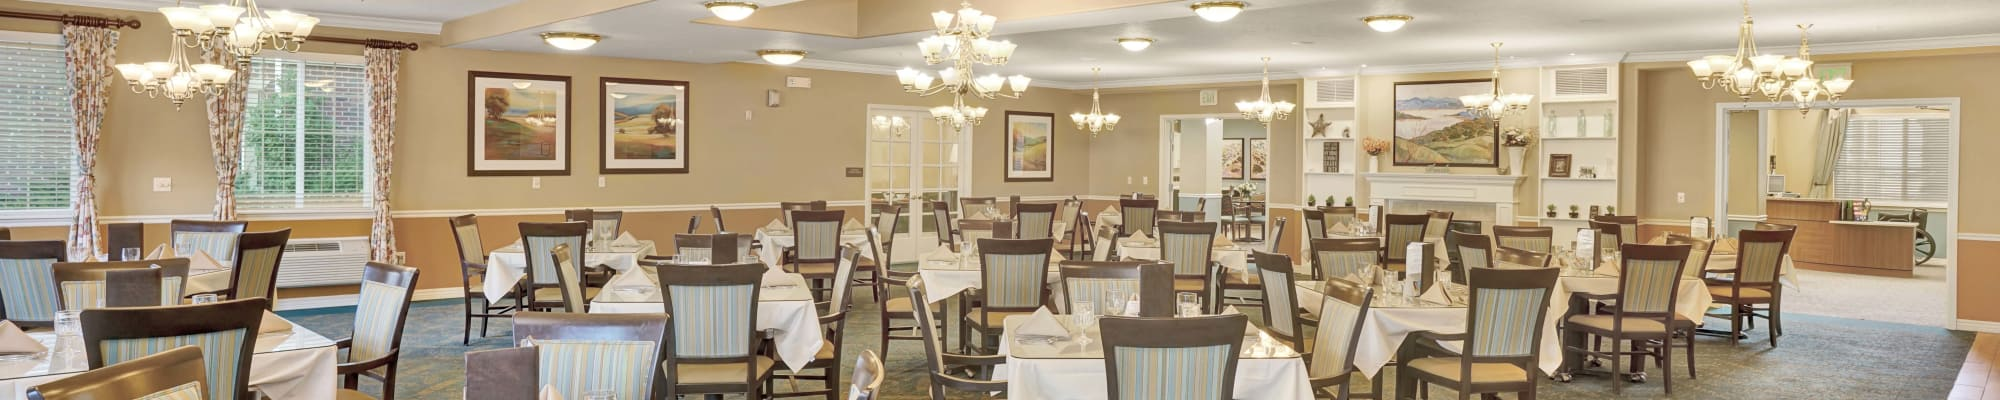 Dining experience at The Charleston at Cedar Hills in Cedar Hills, Utah